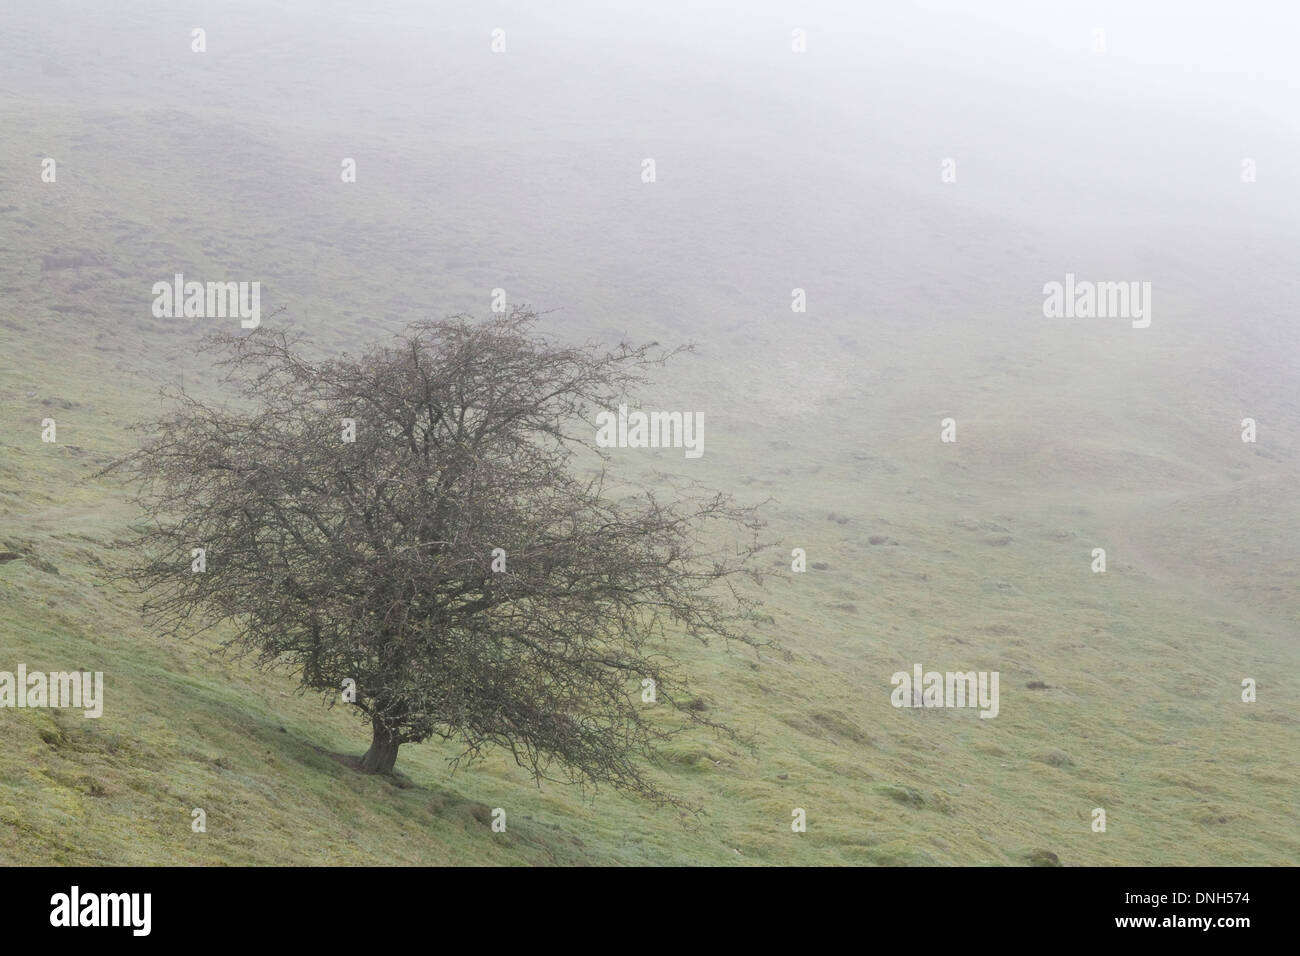 A Common Hawthorn tree, Crataegus monogyna, stands bare in fog on the side of British Camp on the Malvern Hills, Herefordshire. - Stock Image